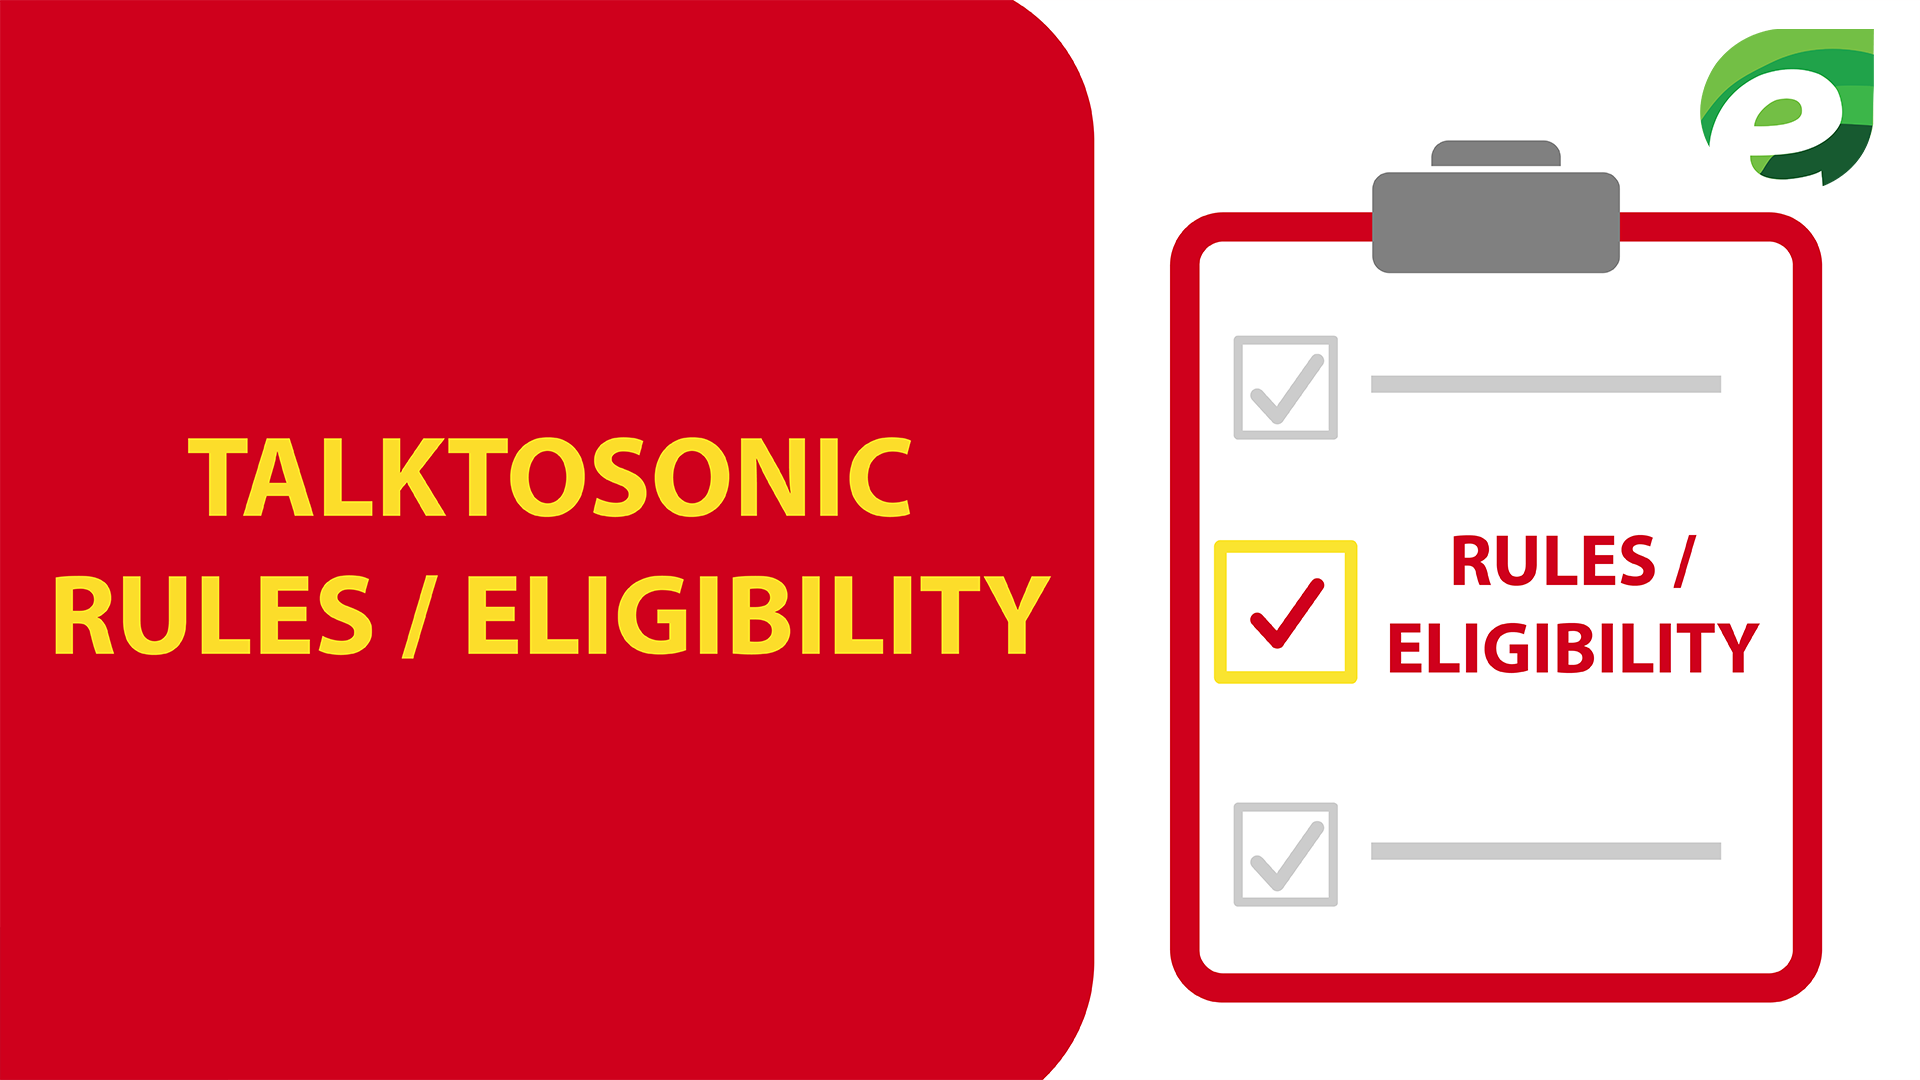 Talk to sonic Survey - Rules / Eligibility